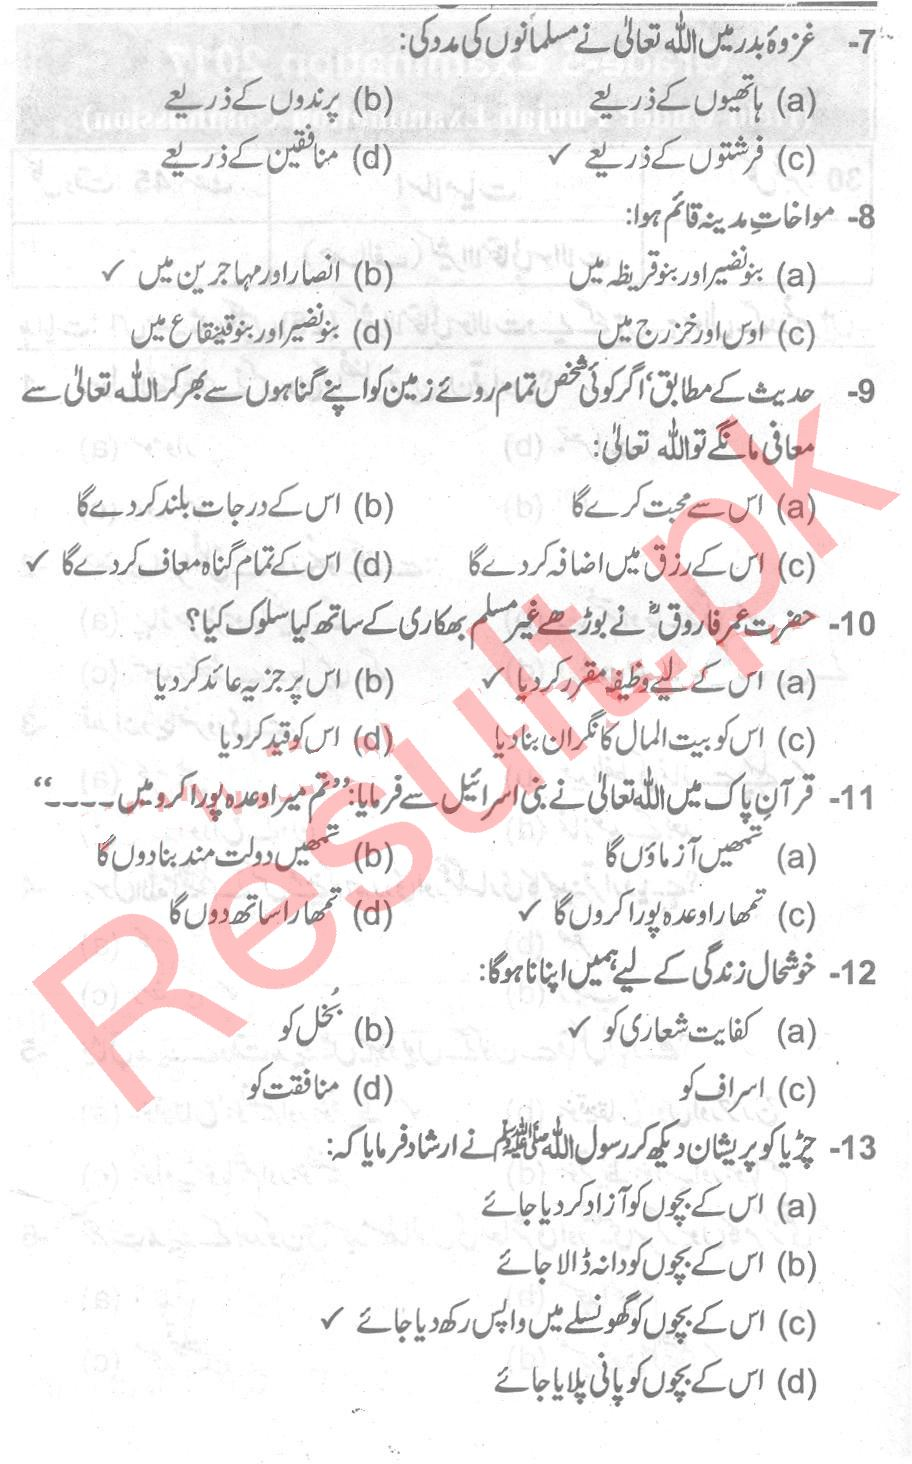 Punjab Education Commission Past Paper 2018 5th Class, Fifth, Grade